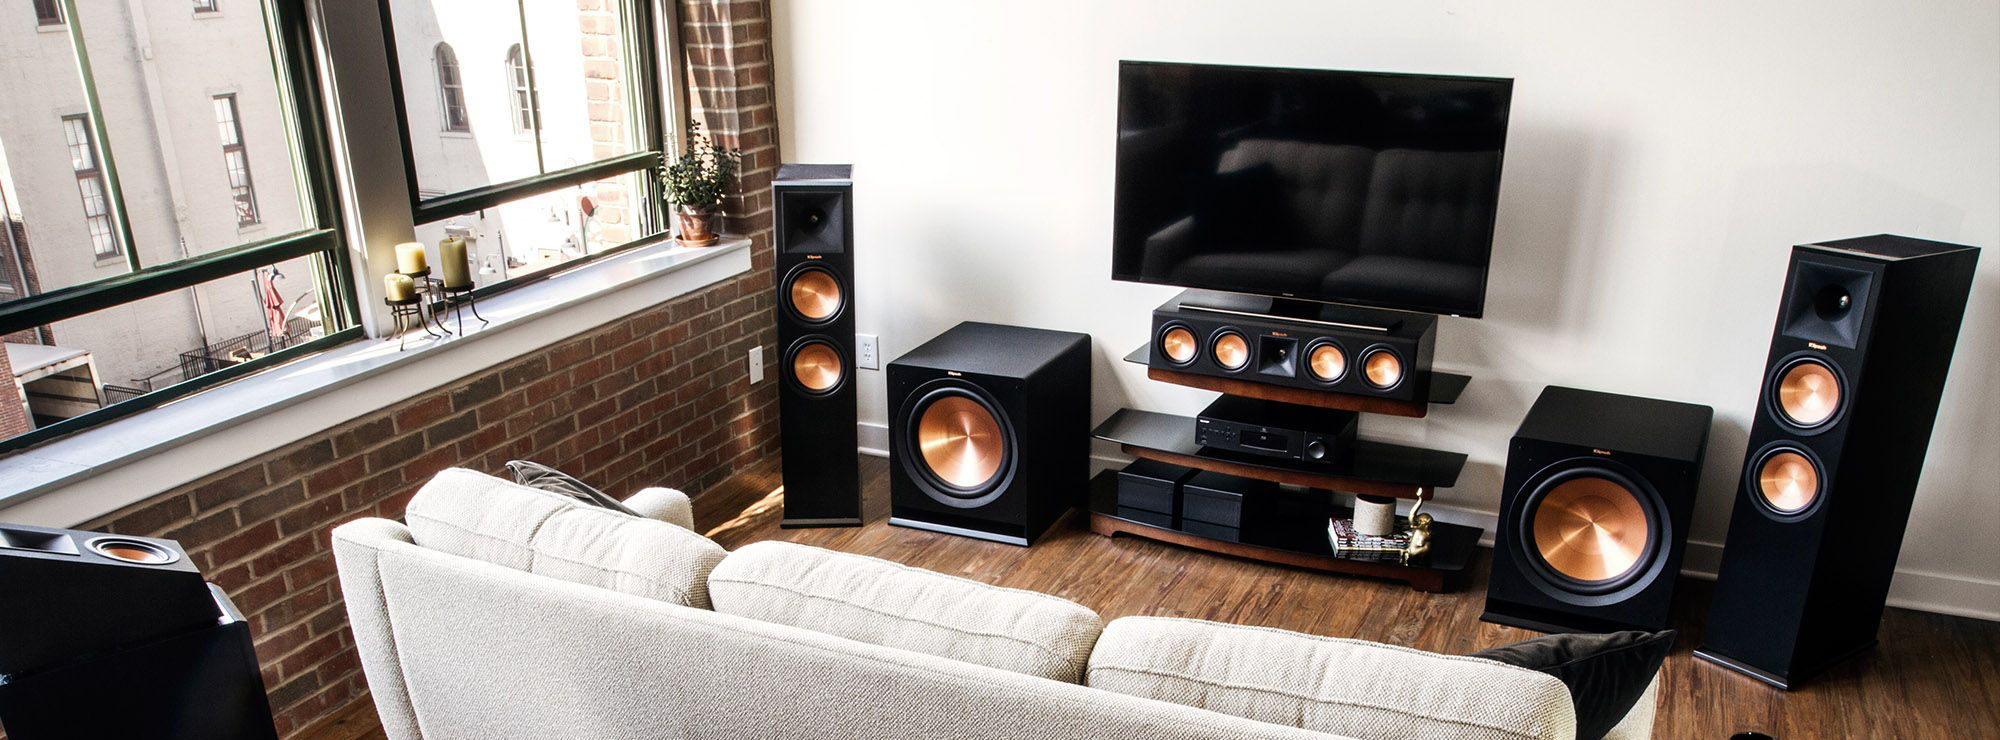 Klipsch Dolby Atmos home theater system in a living room with tv and couch